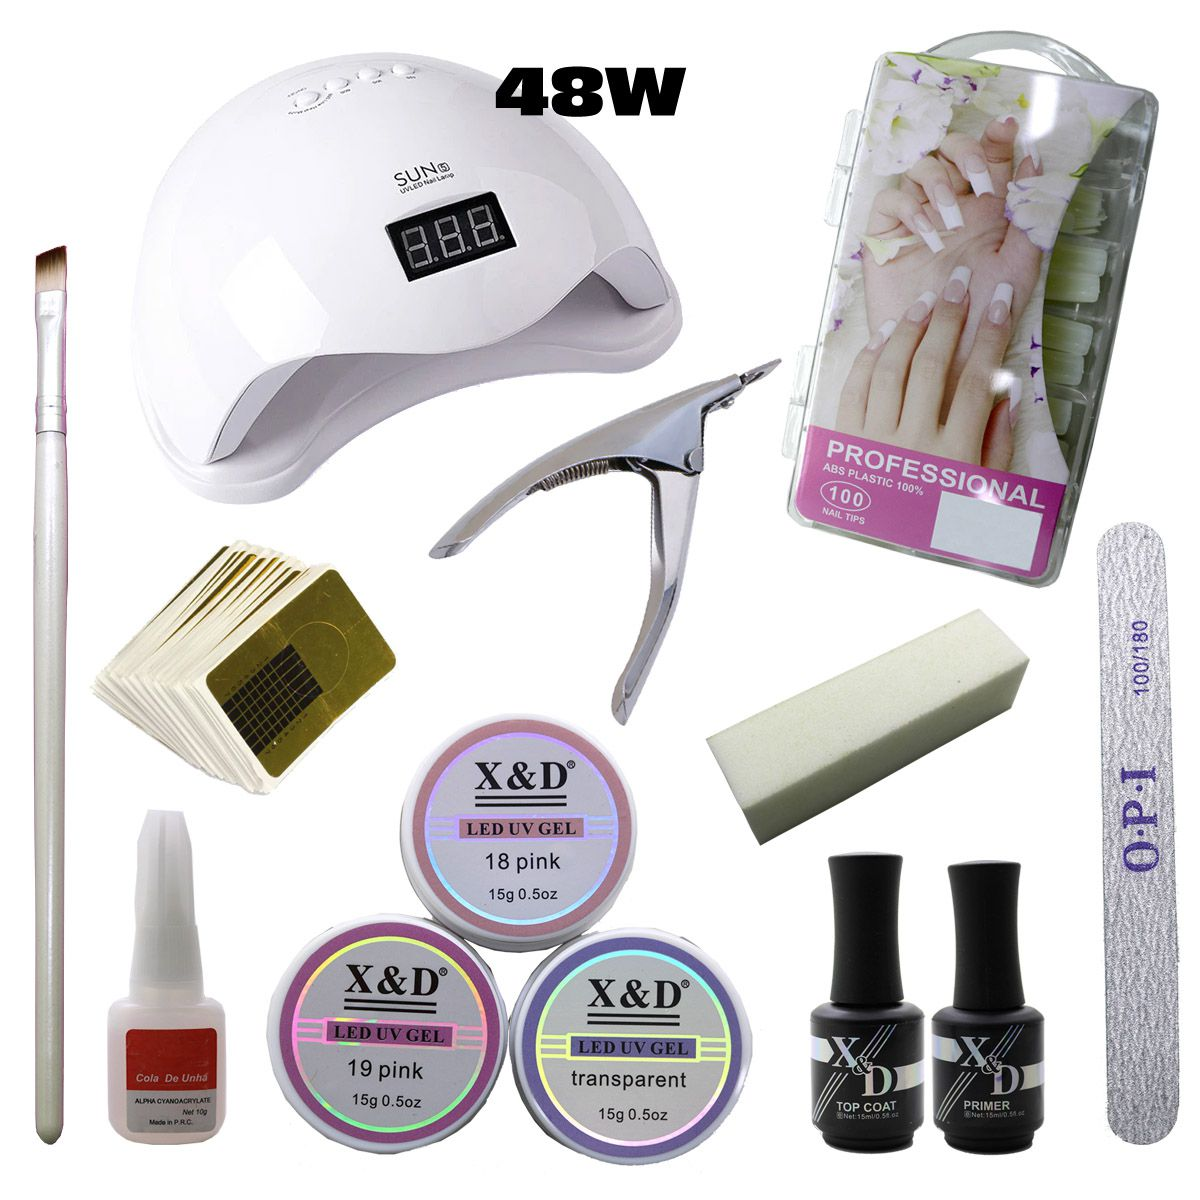 Kit Unha Gel Acrigel Led UV Sun 5 48W Top Coat Primer 587XD